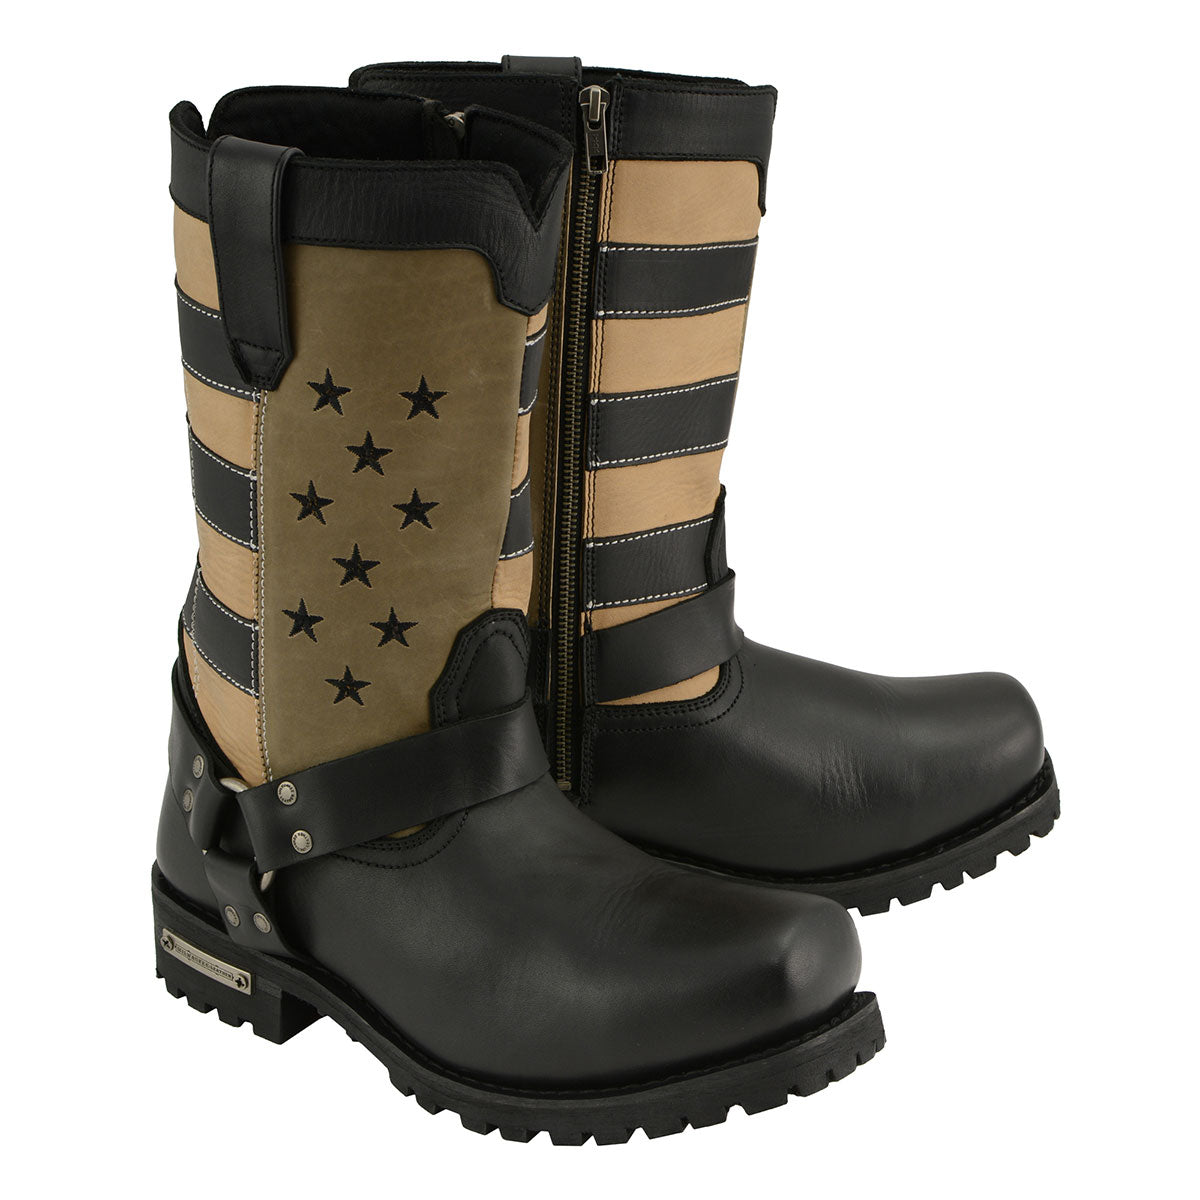 Milwaukee Leather MBM9045 Men's Black with Tan Stars and Stripes